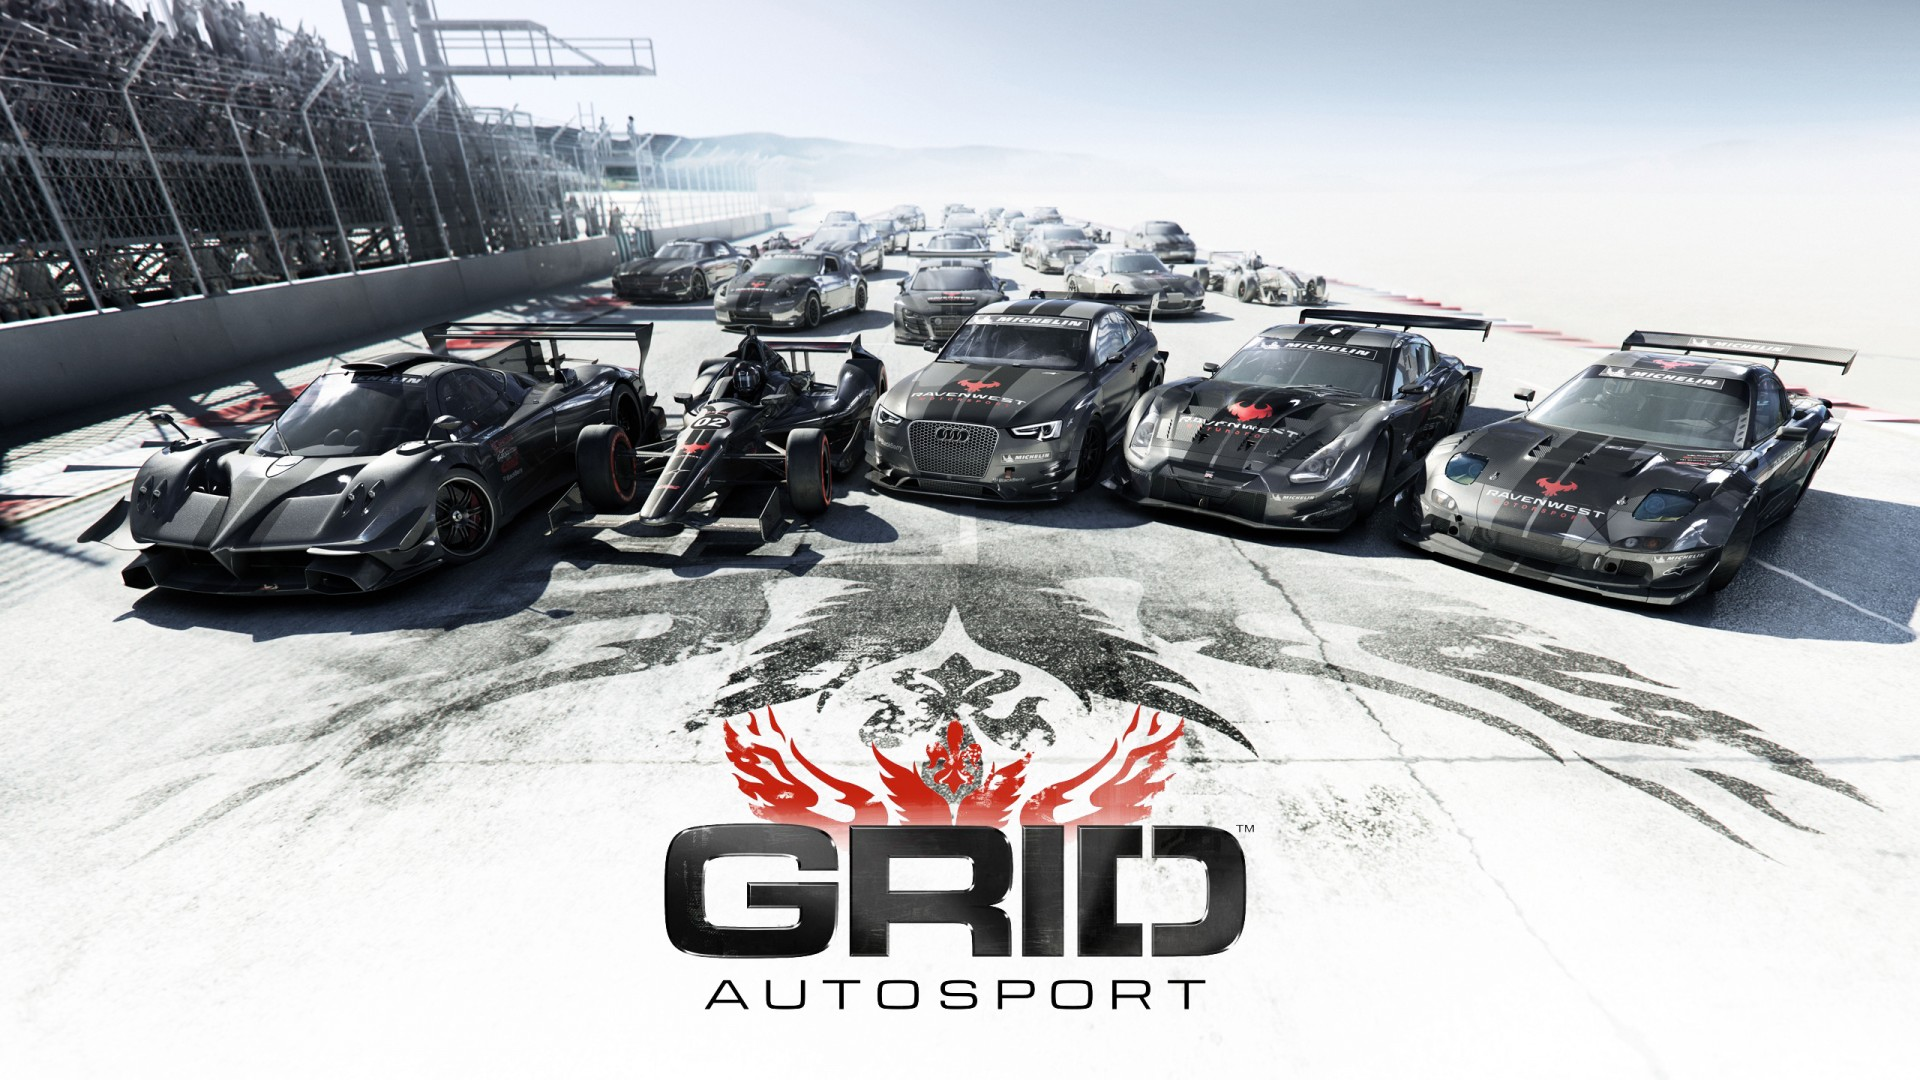 4k Wallpapers Of Anime Girls Grid Autosport Game Wallpapers Hd Wallpapers Id 13436